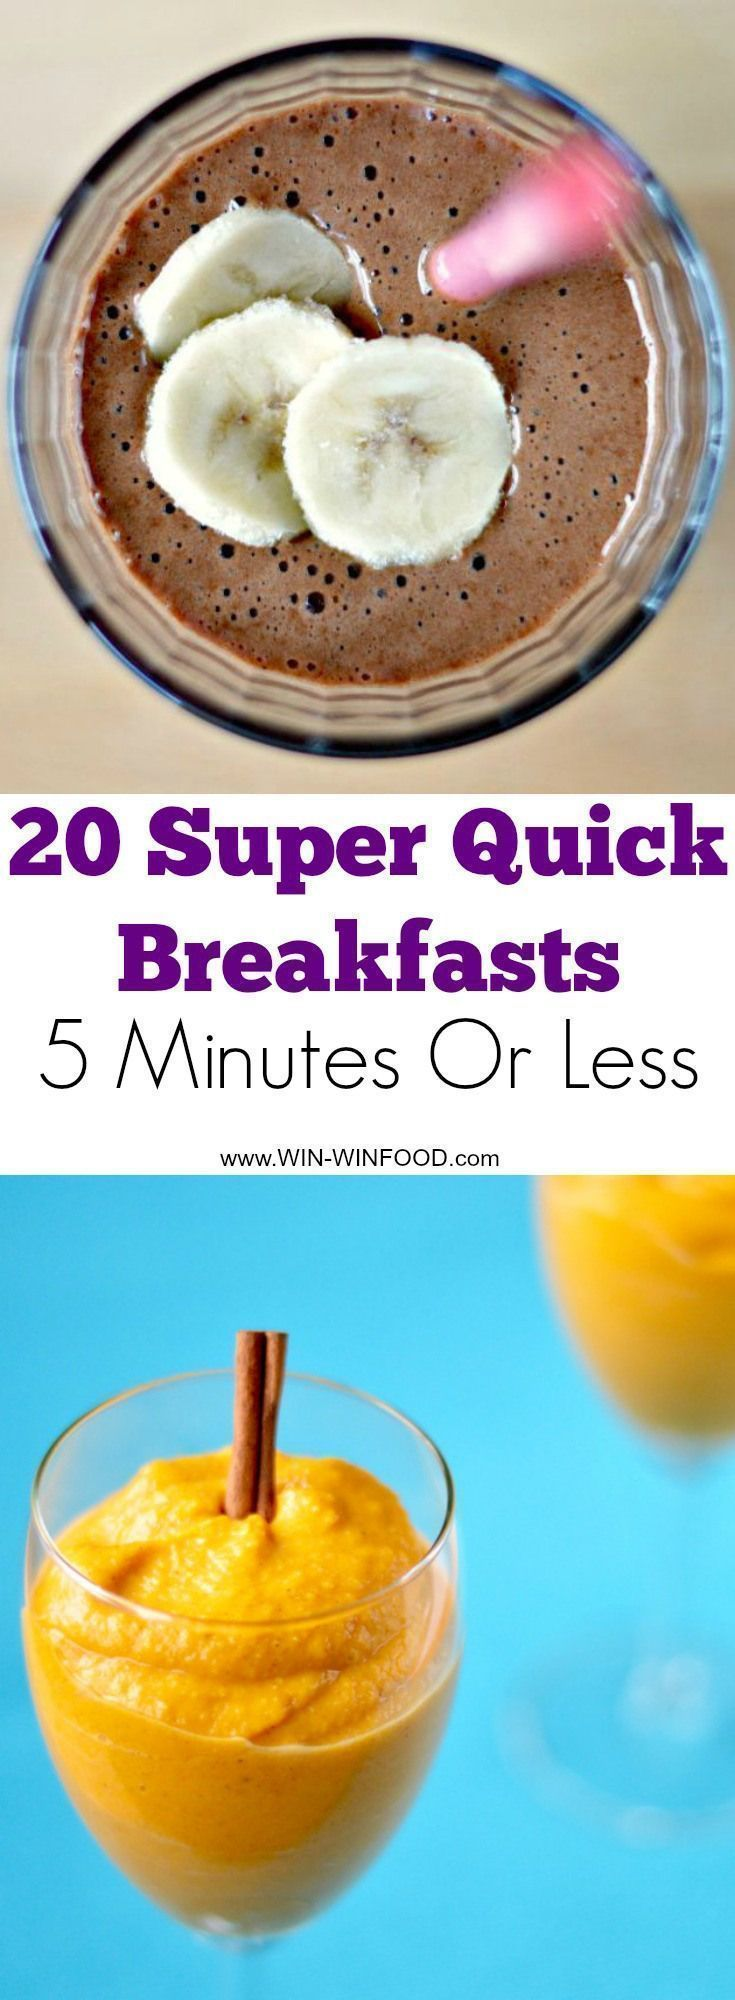 20 Super Quick Breakfast Recipes - 5 Minutes Or Less | WIN-WINFOOD.com A collection of #vegan #healthy, #refinedsugarfree and super #quick #breakfast recipes that take just 5 minutes or less to prepare